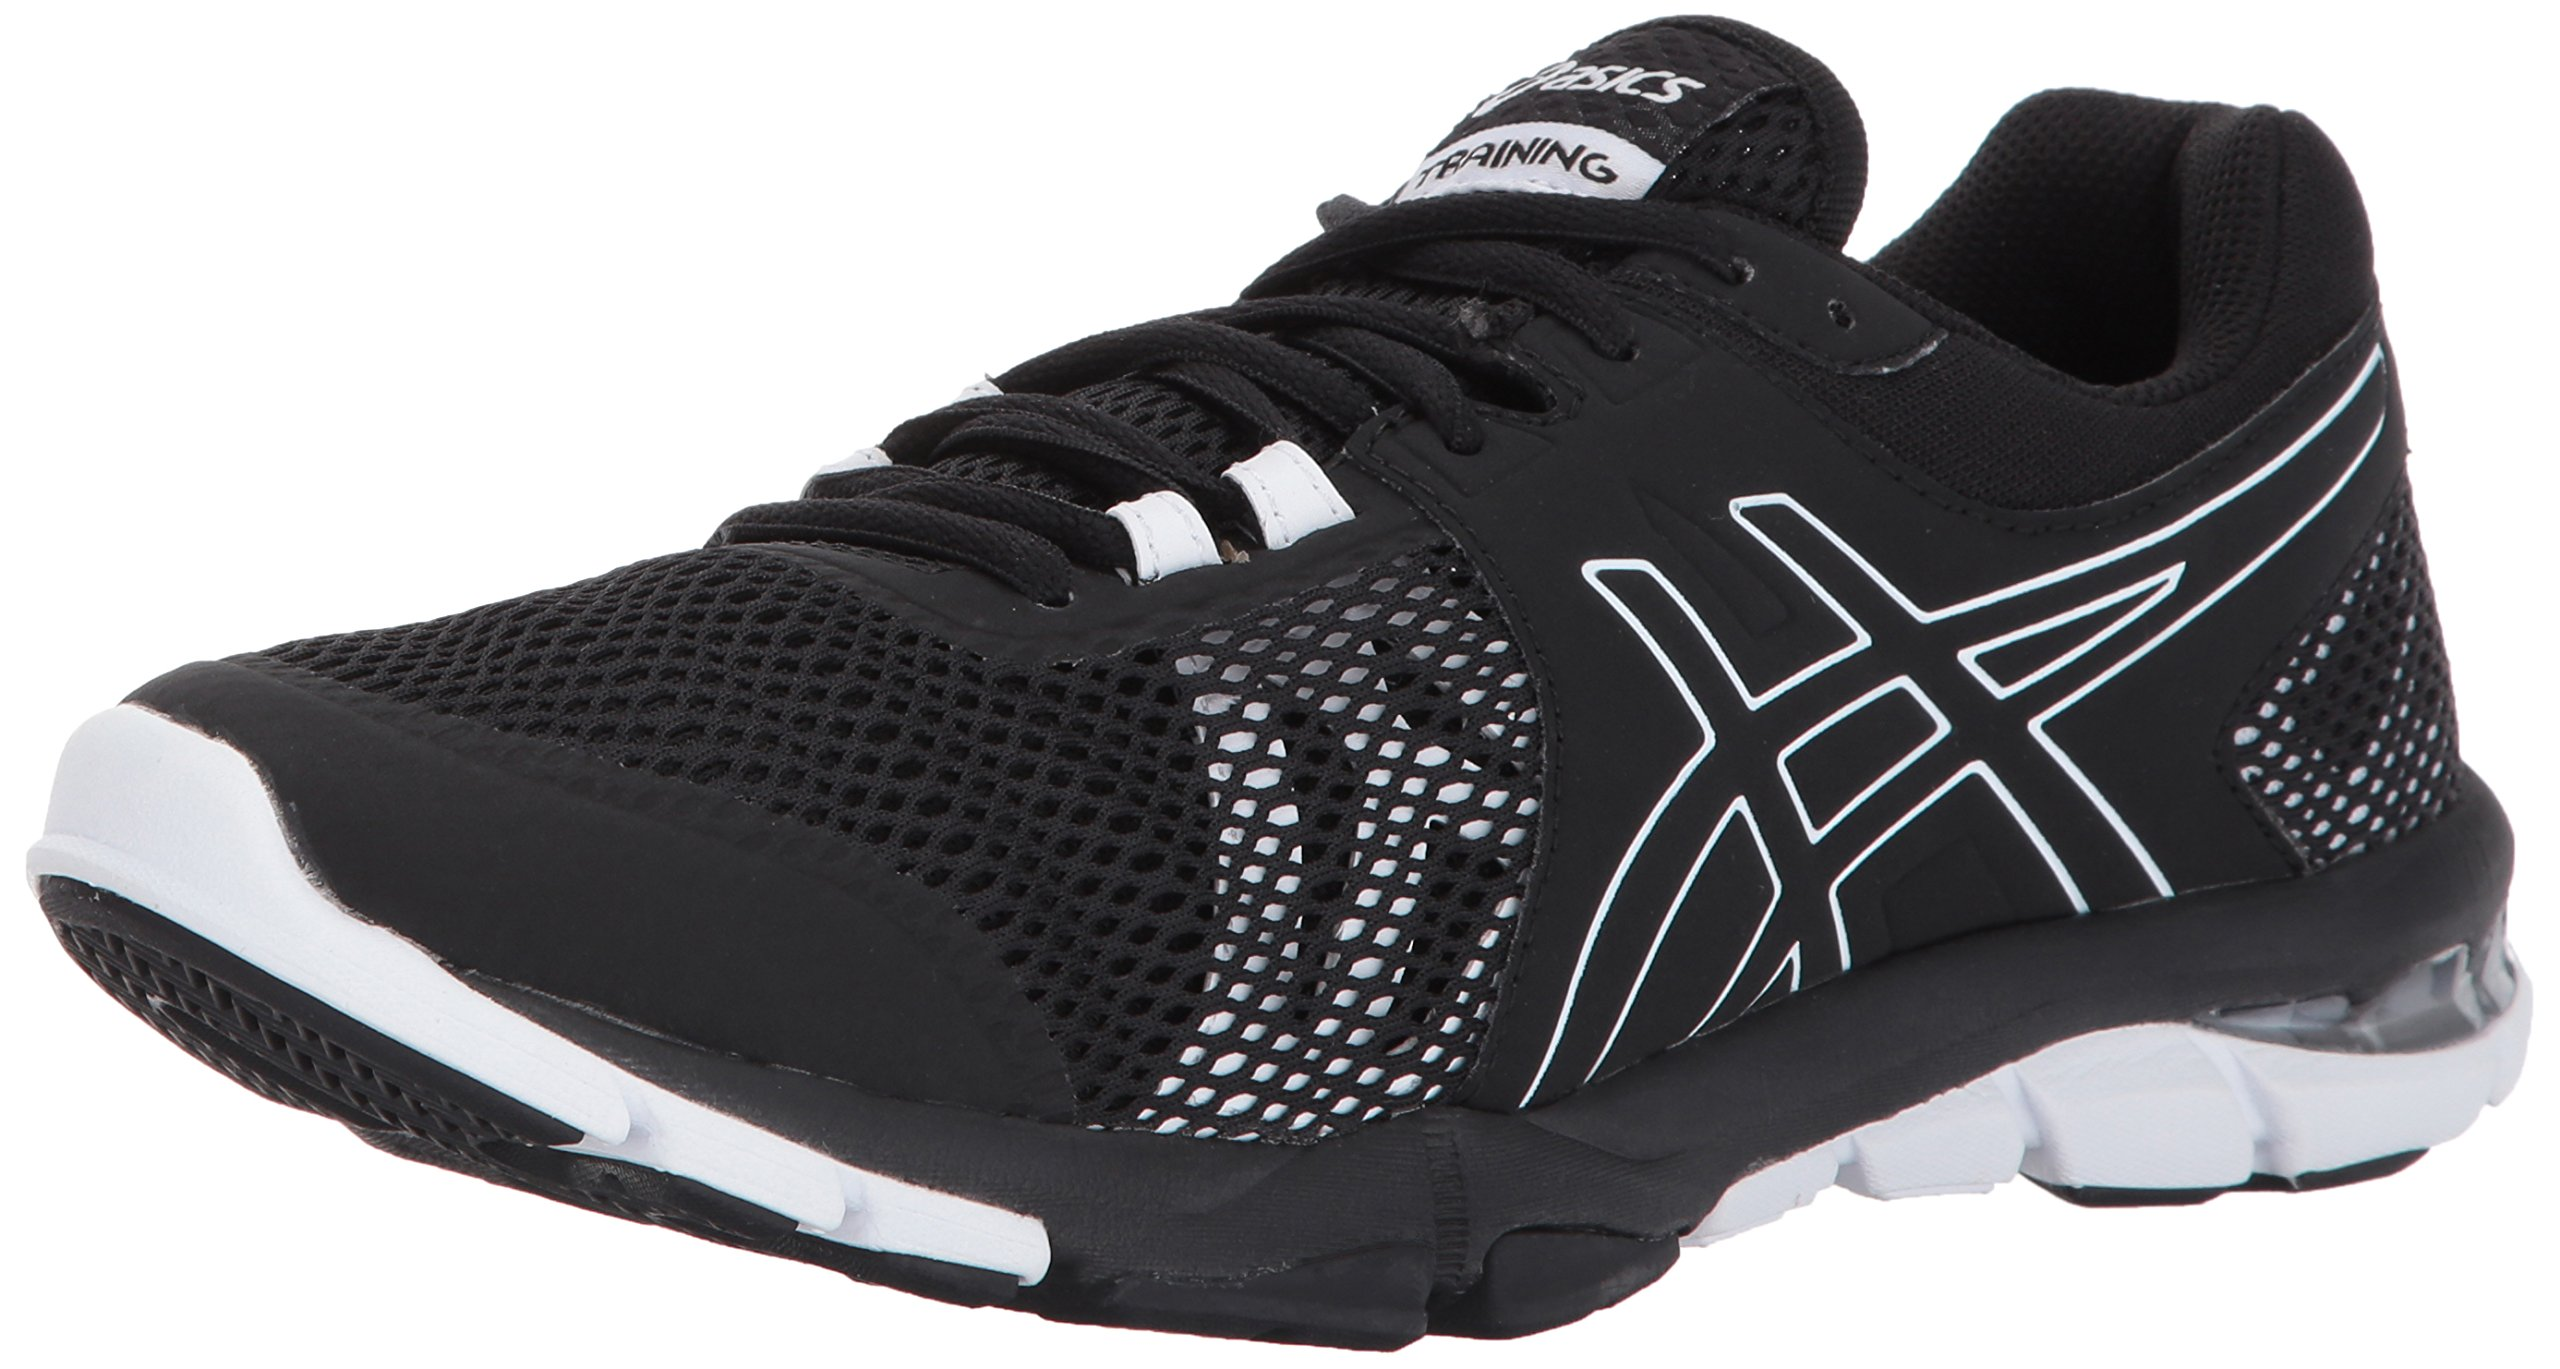 ASICS Women's Gel-Craze TR 4 Cross Trainer, Black/Black/White, 6.5 Medium US